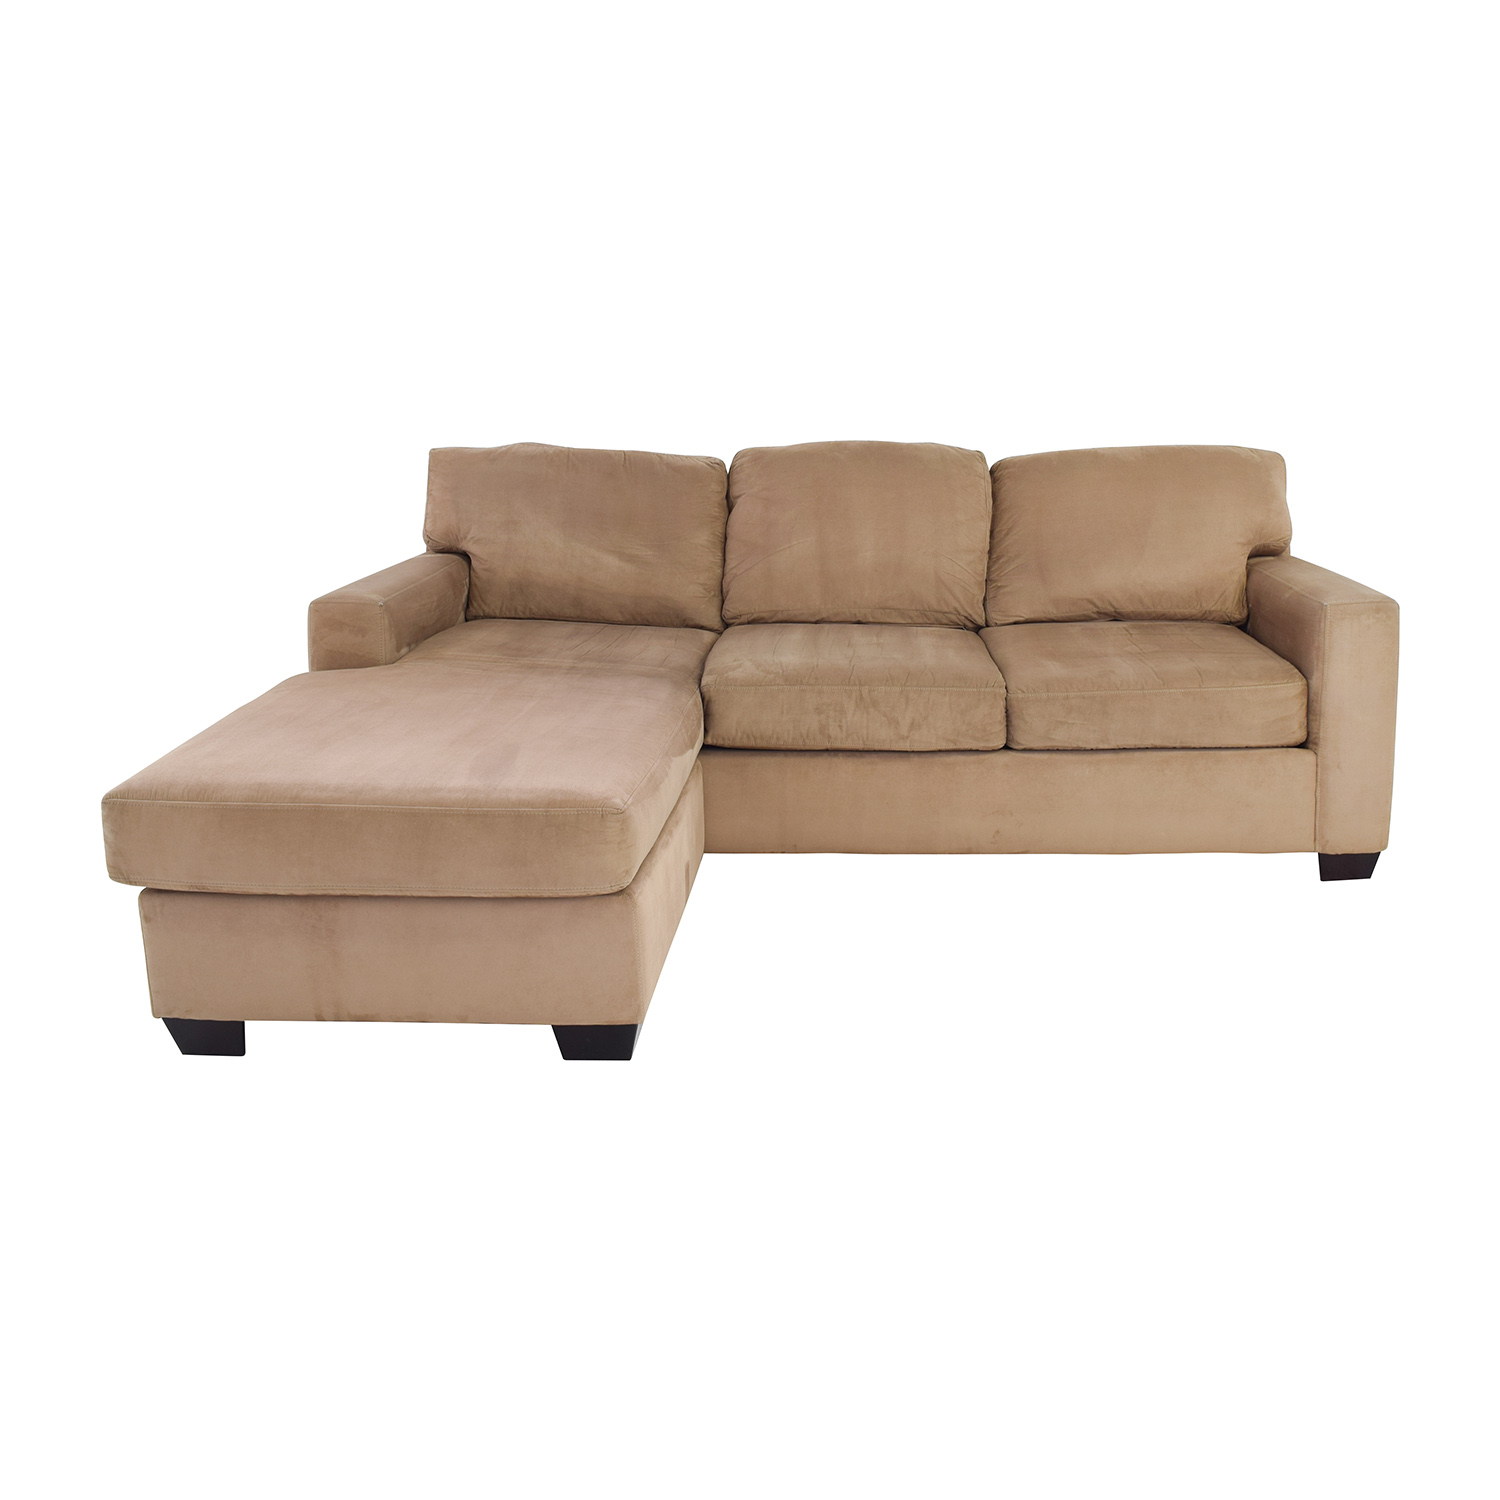 contemporary item chaise lfchs width products threshold serta hughes sofas furniture trim sofa by casual height with upholstery